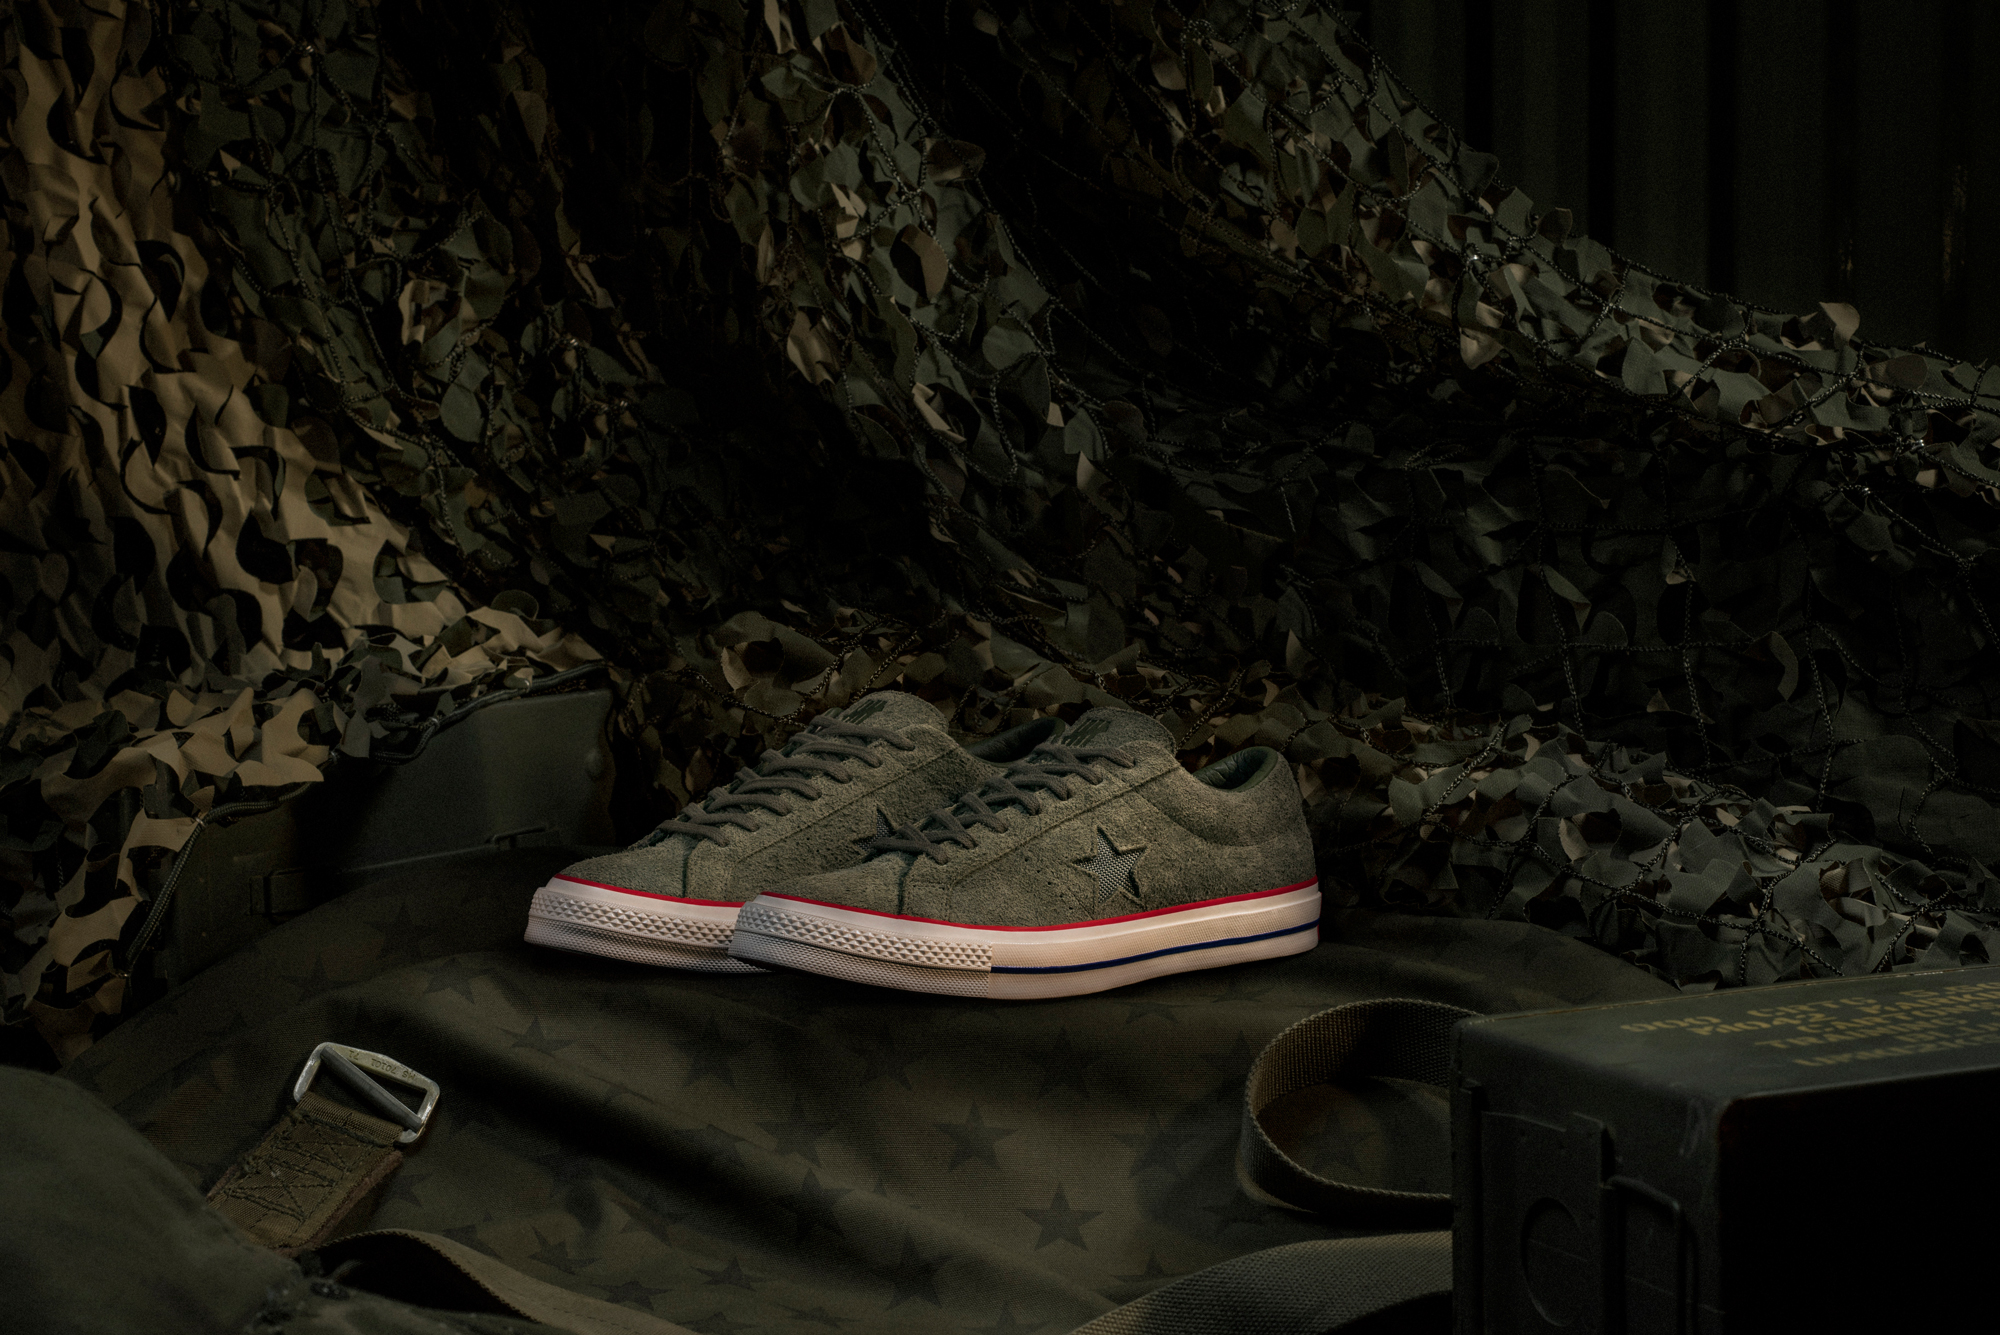 converse-one-star-undftd-02